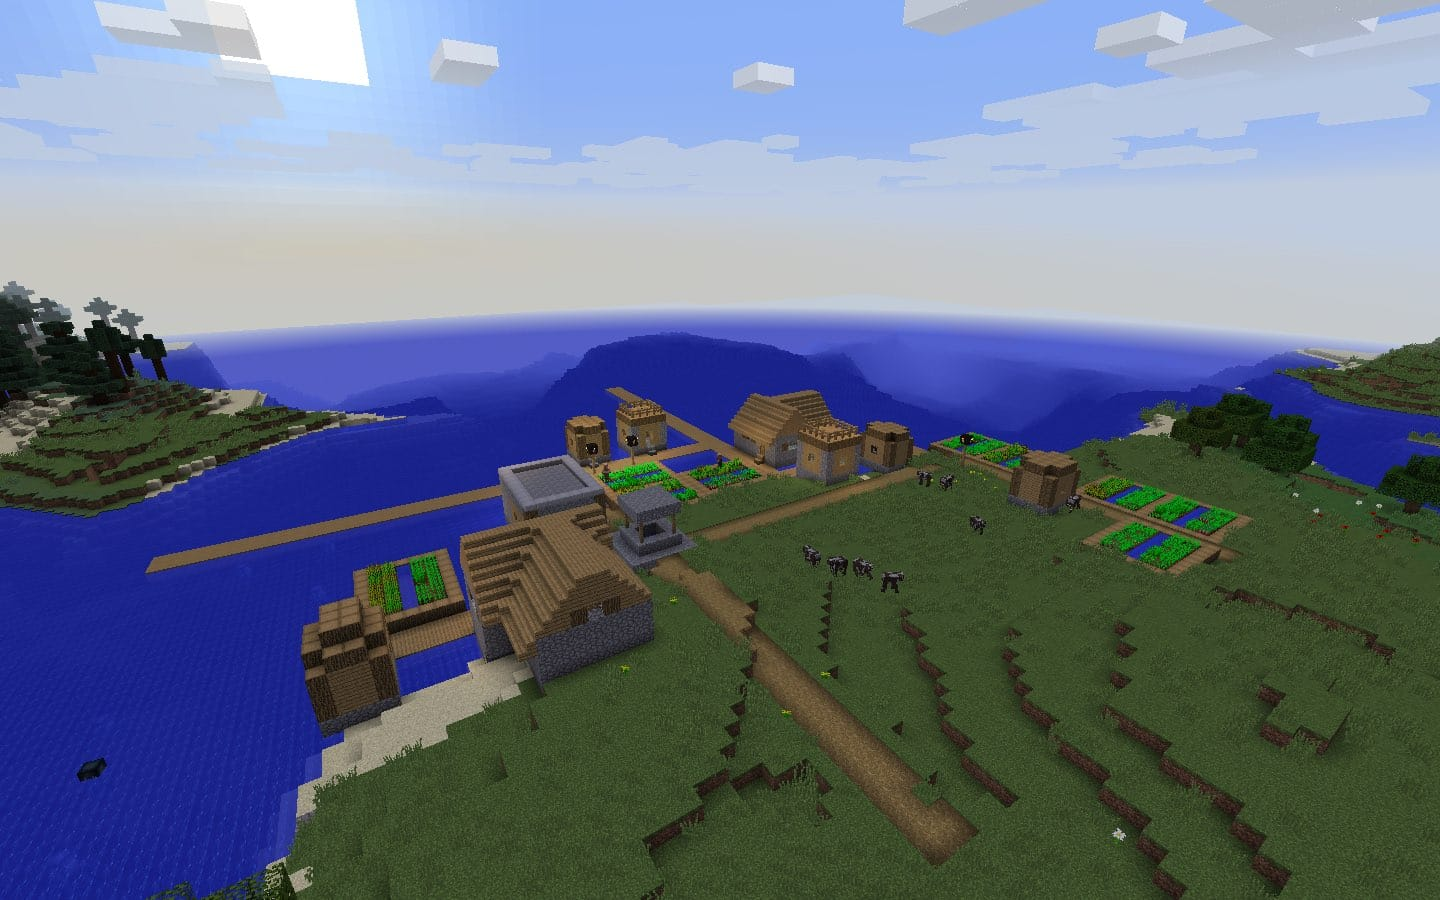 Fishing Village with Blacksmith - Minecraft Seed HQ